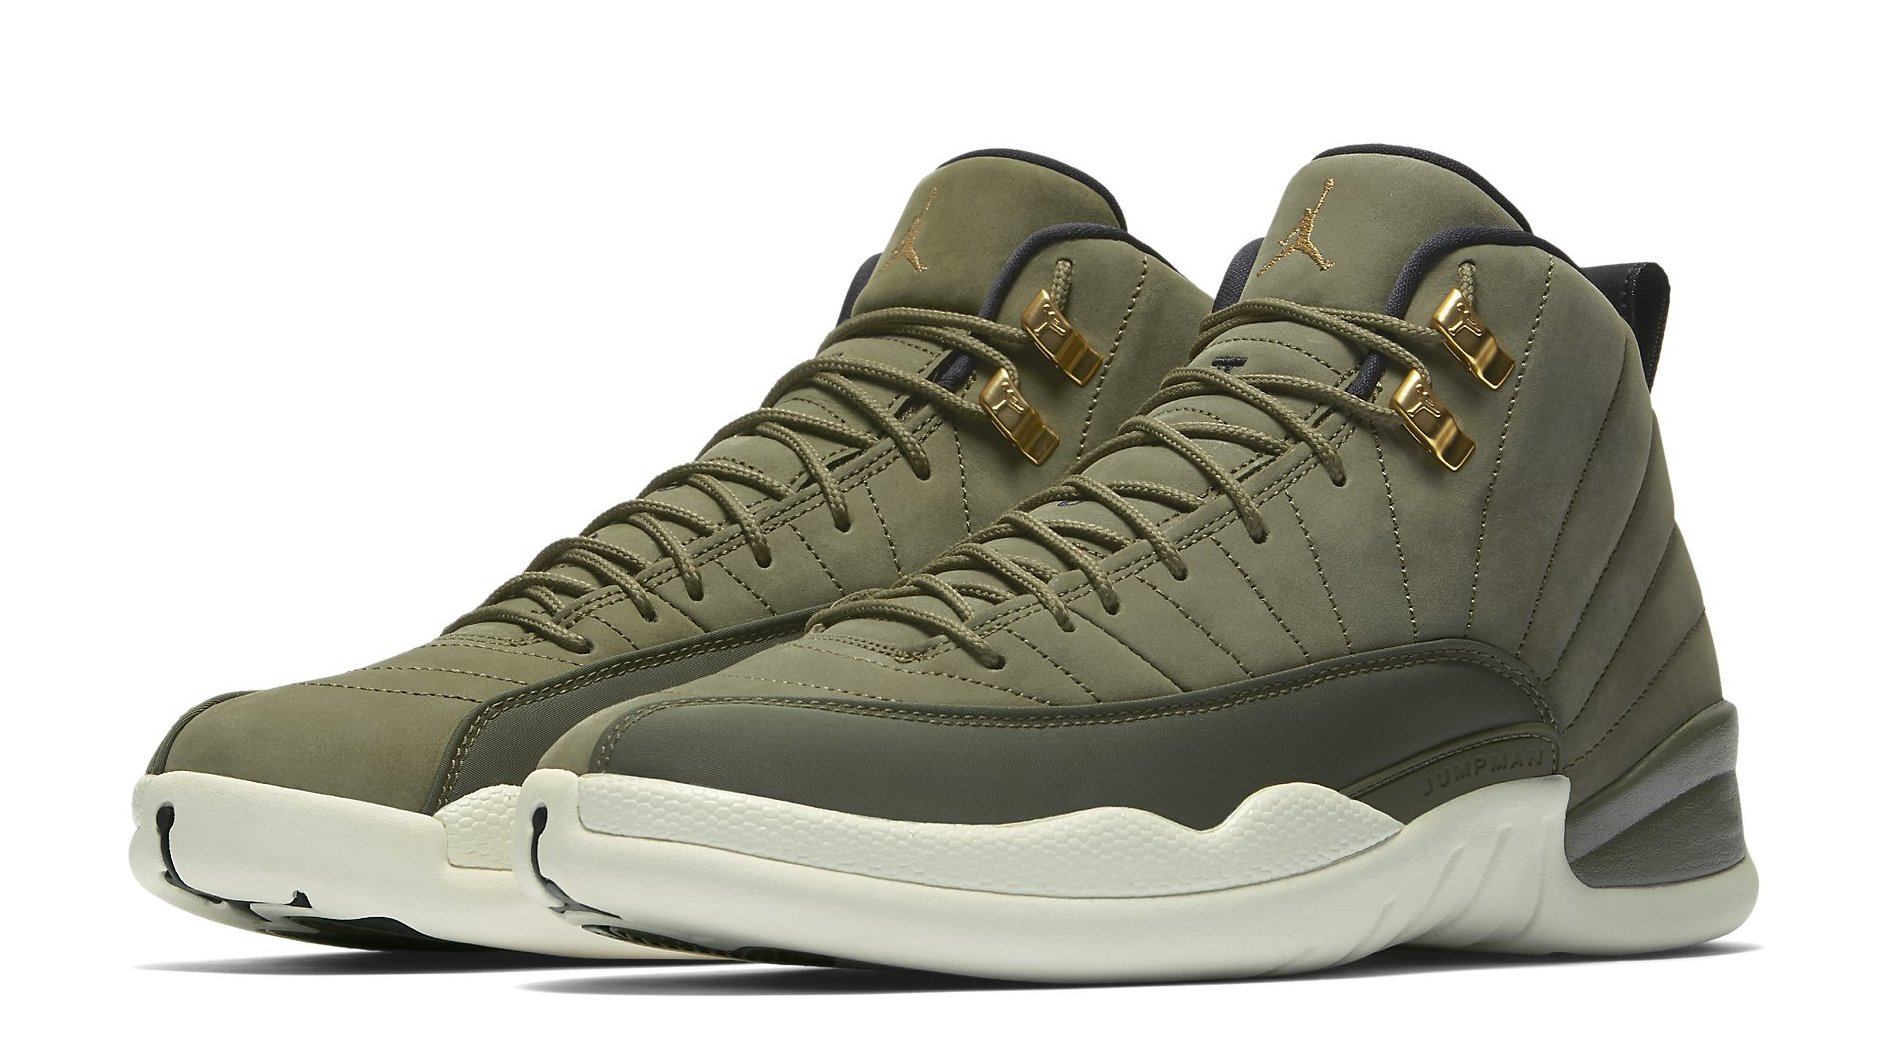 9a8739d147716f Air Jordan 12 Chris Paul  Class of 2003  Release Date 130690-301 ...